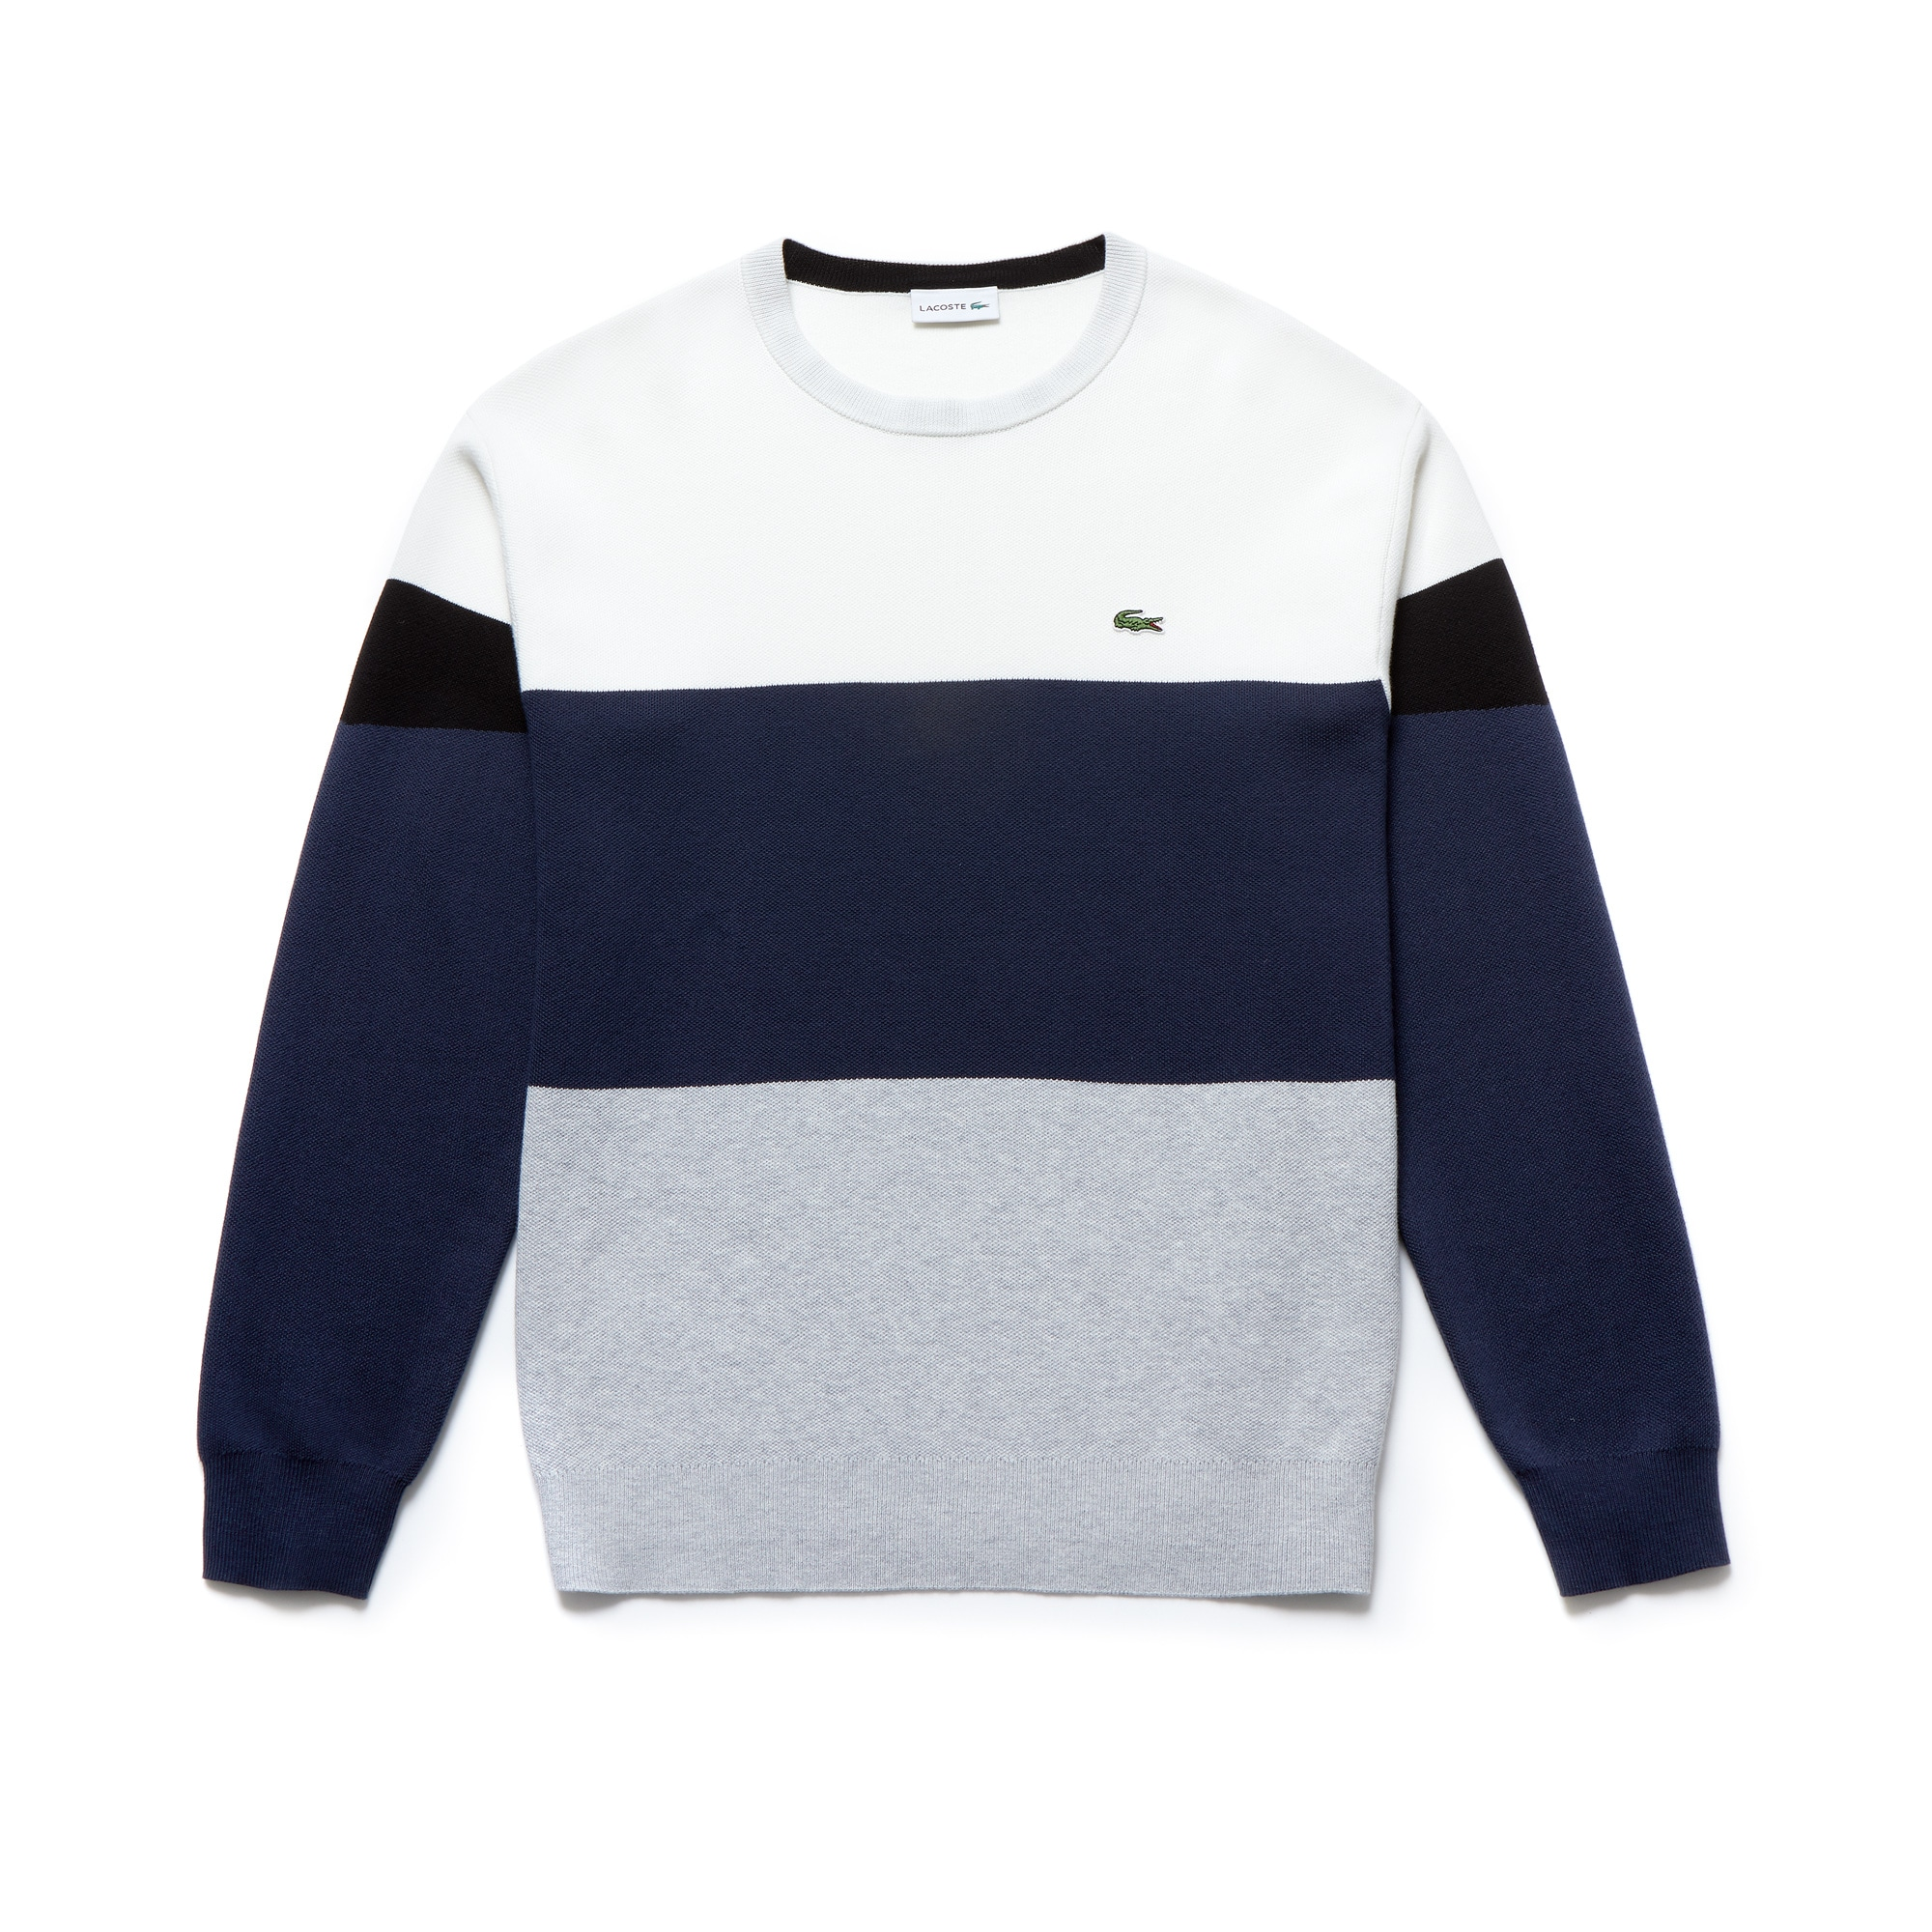 92d3b0092d Pullovers & Sweaters | LACOSTE